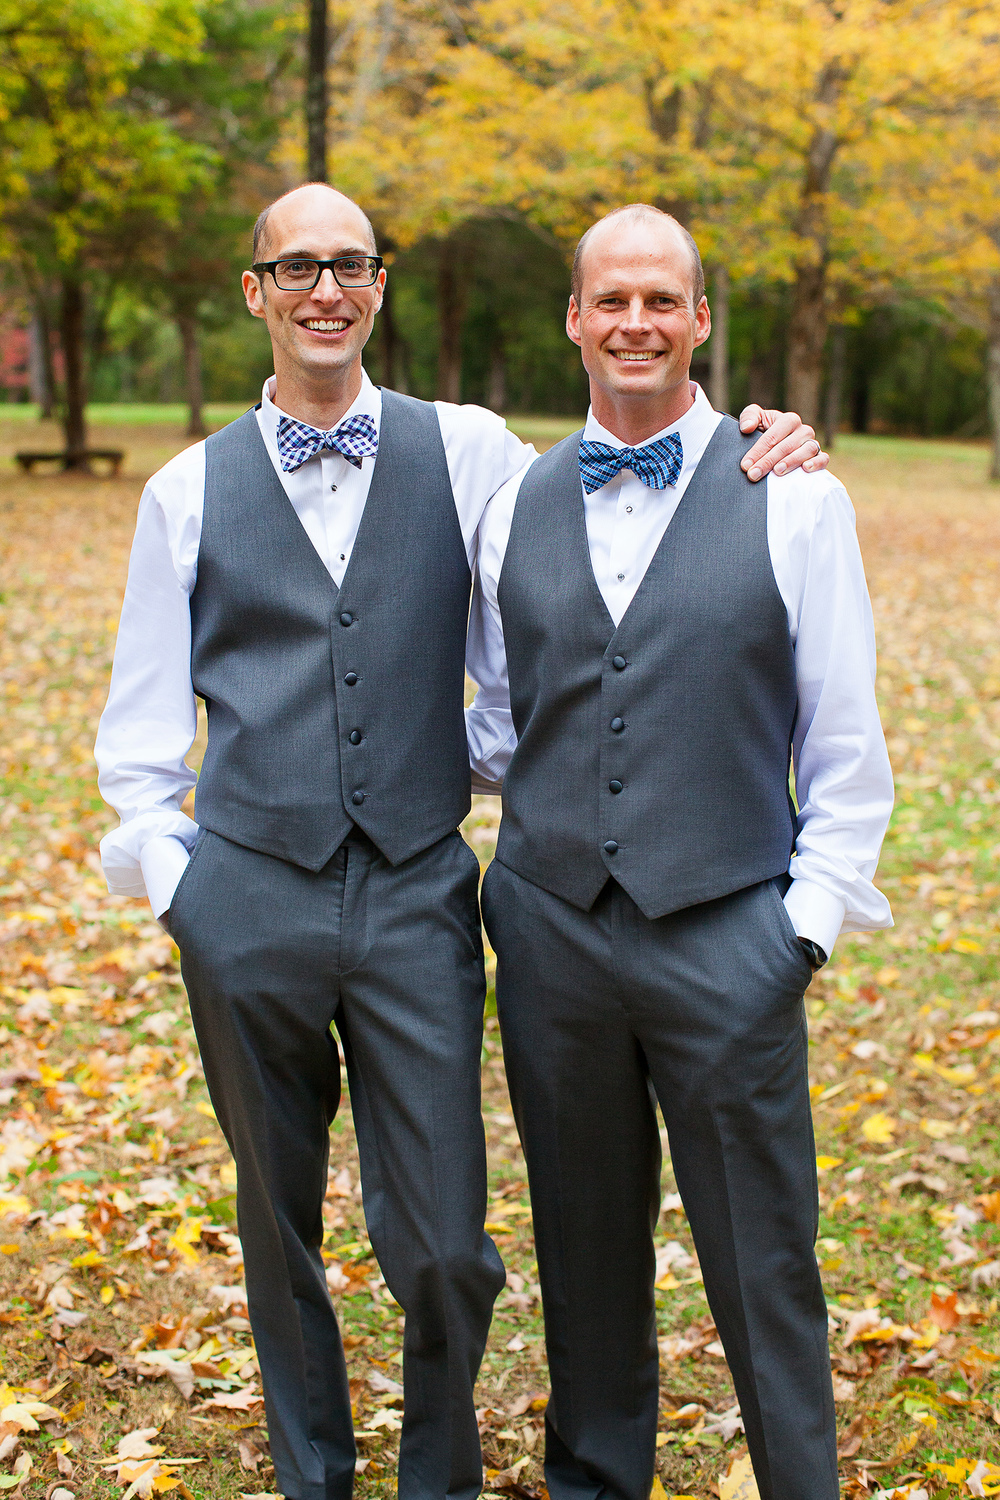 Brothers in a Bridal Party